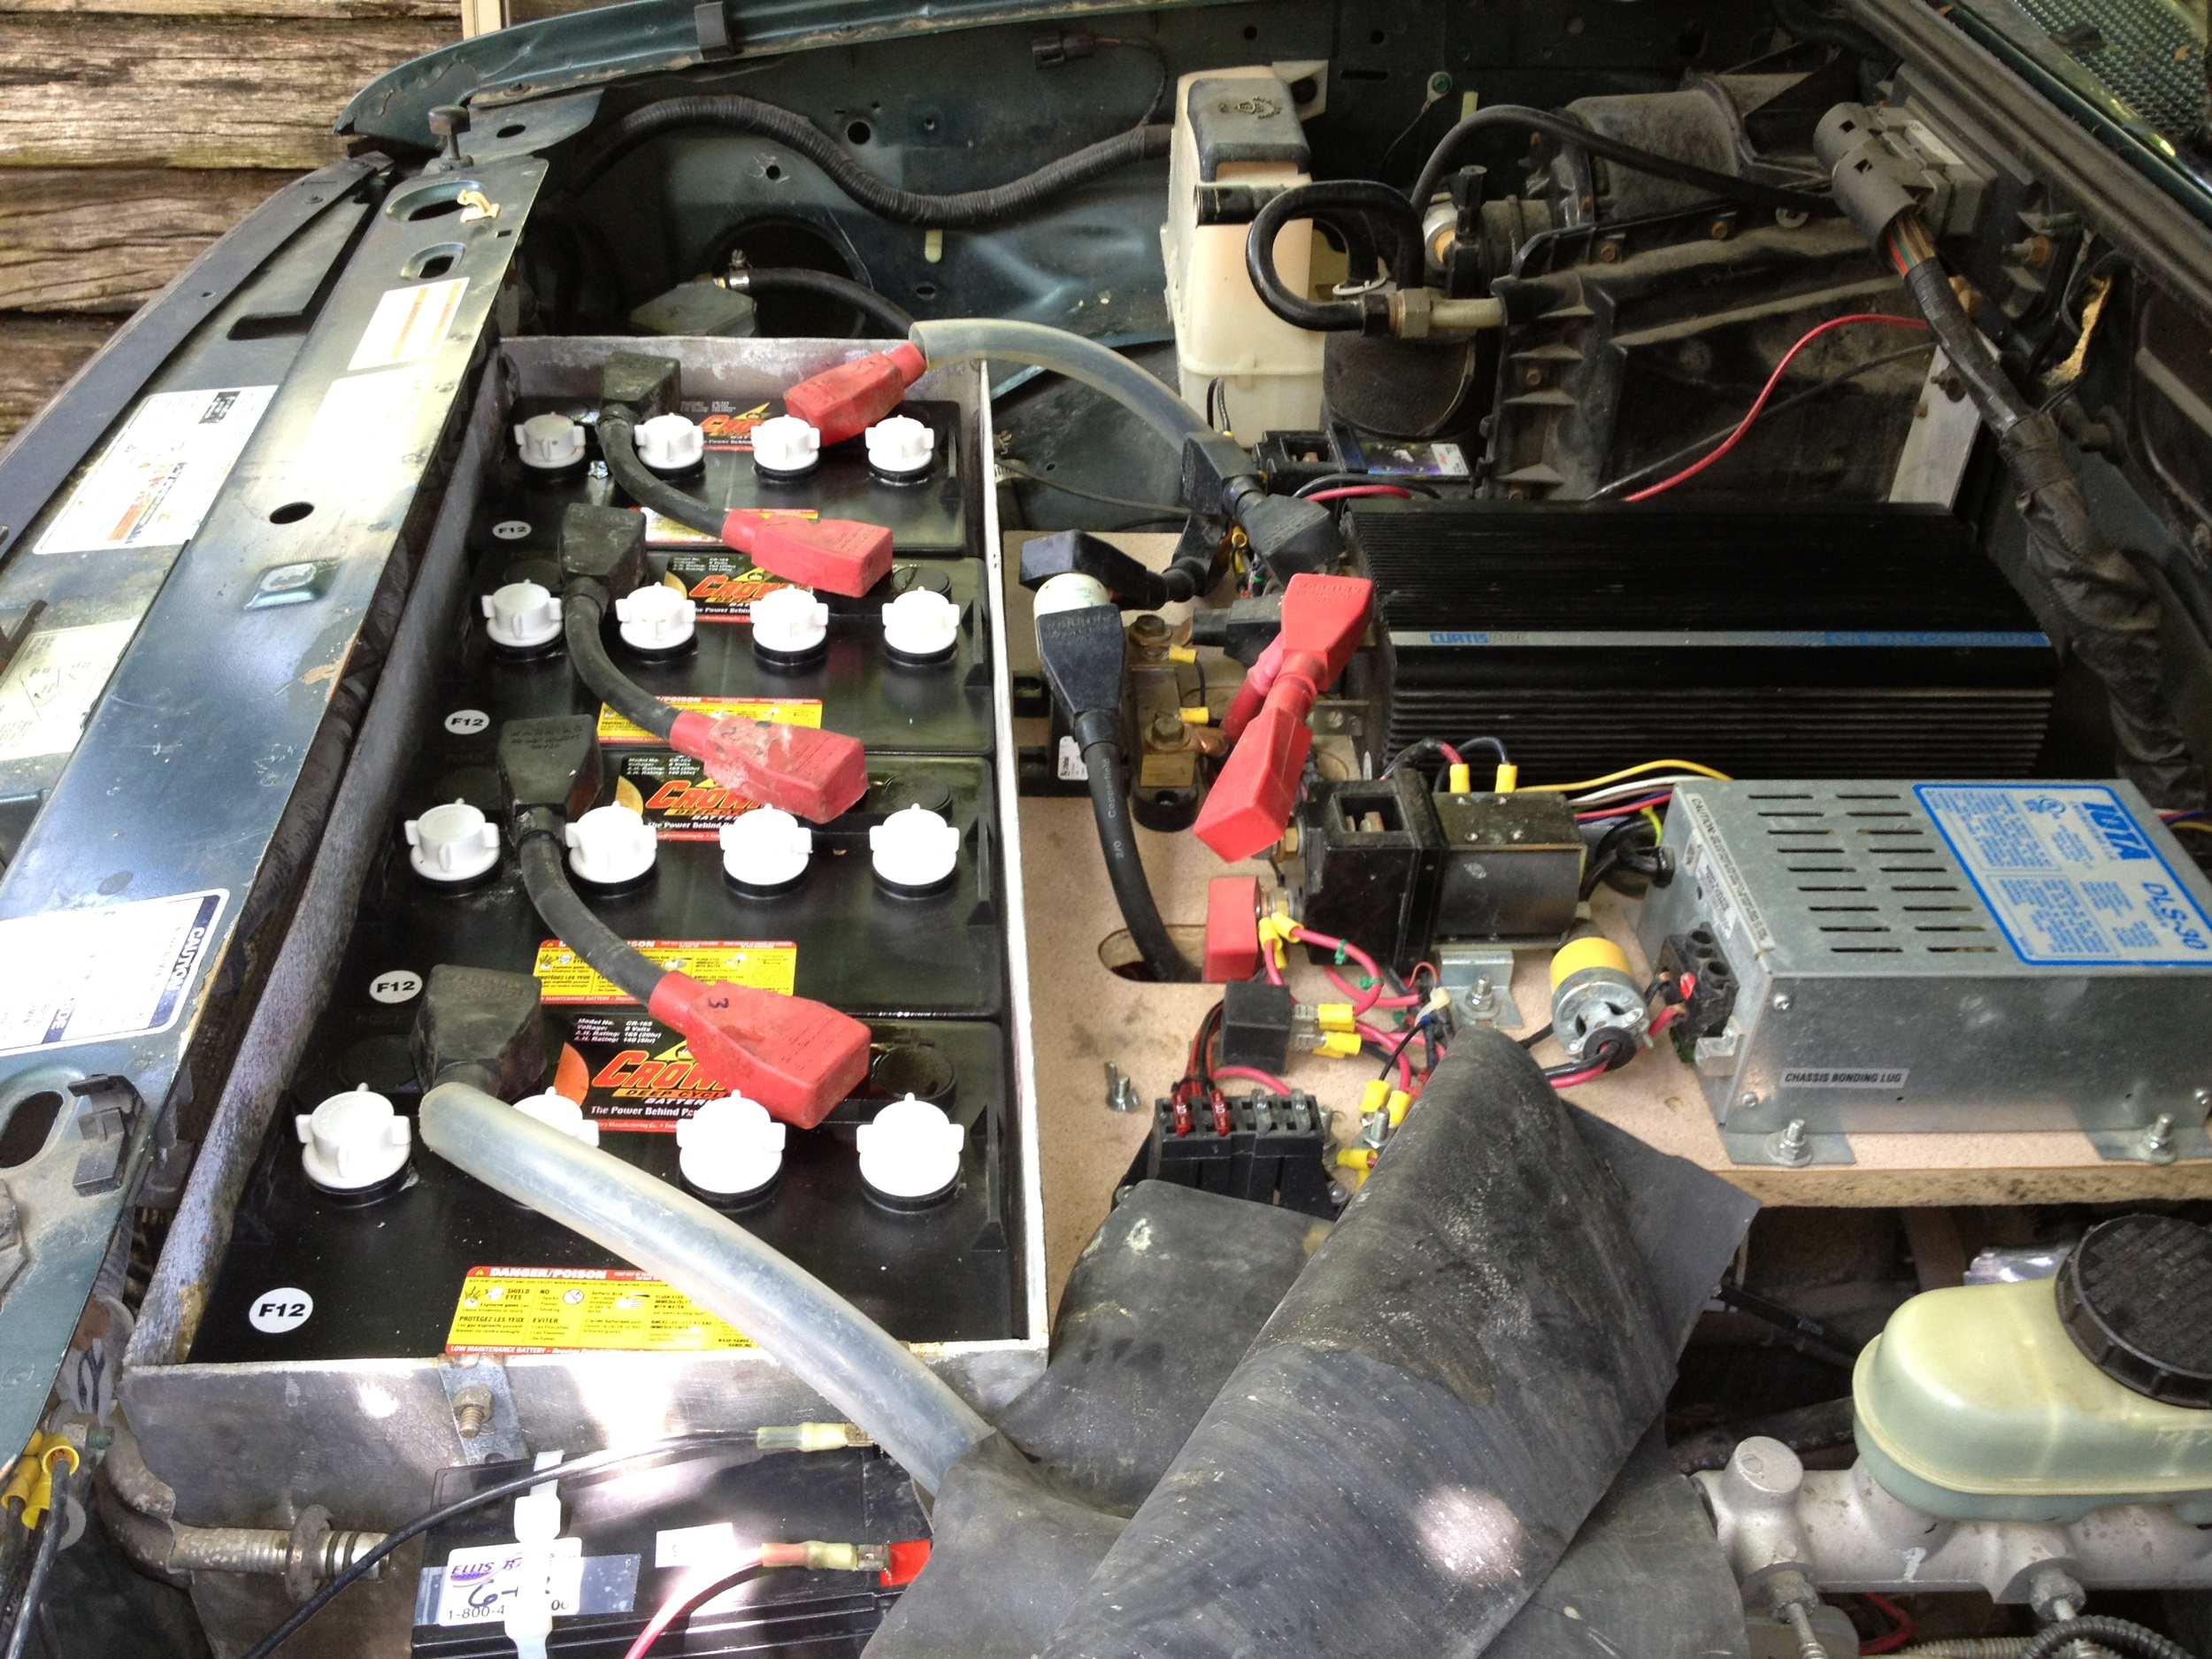 Under the hood of the Electric Ranger 5 years after the conversion with a new battery pack